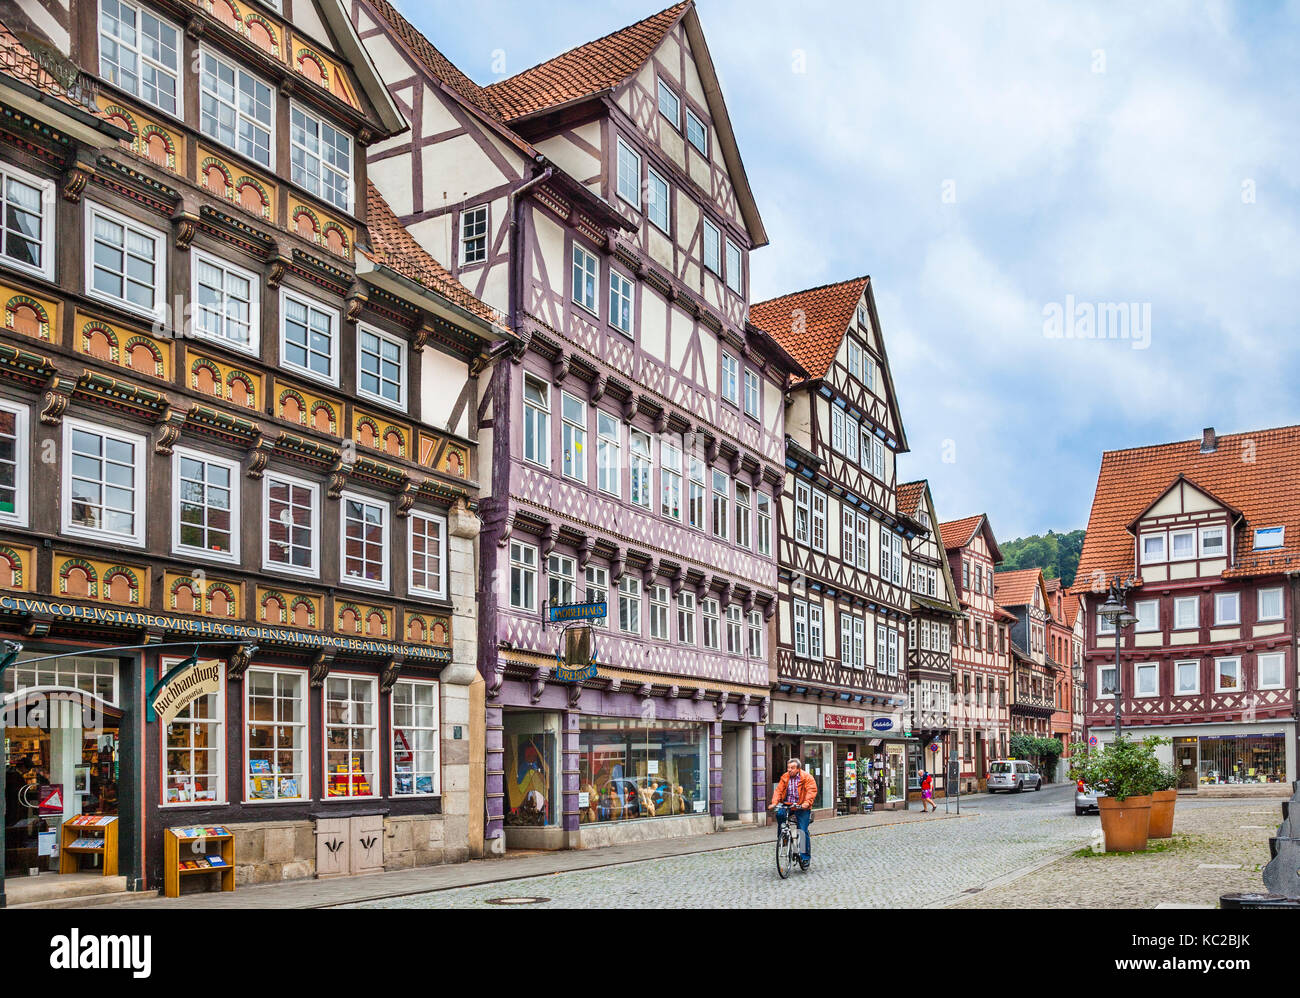 Germany, Lower Saxony, Hann. Münden, medieval half-timbered houses at the market square Stock Photo